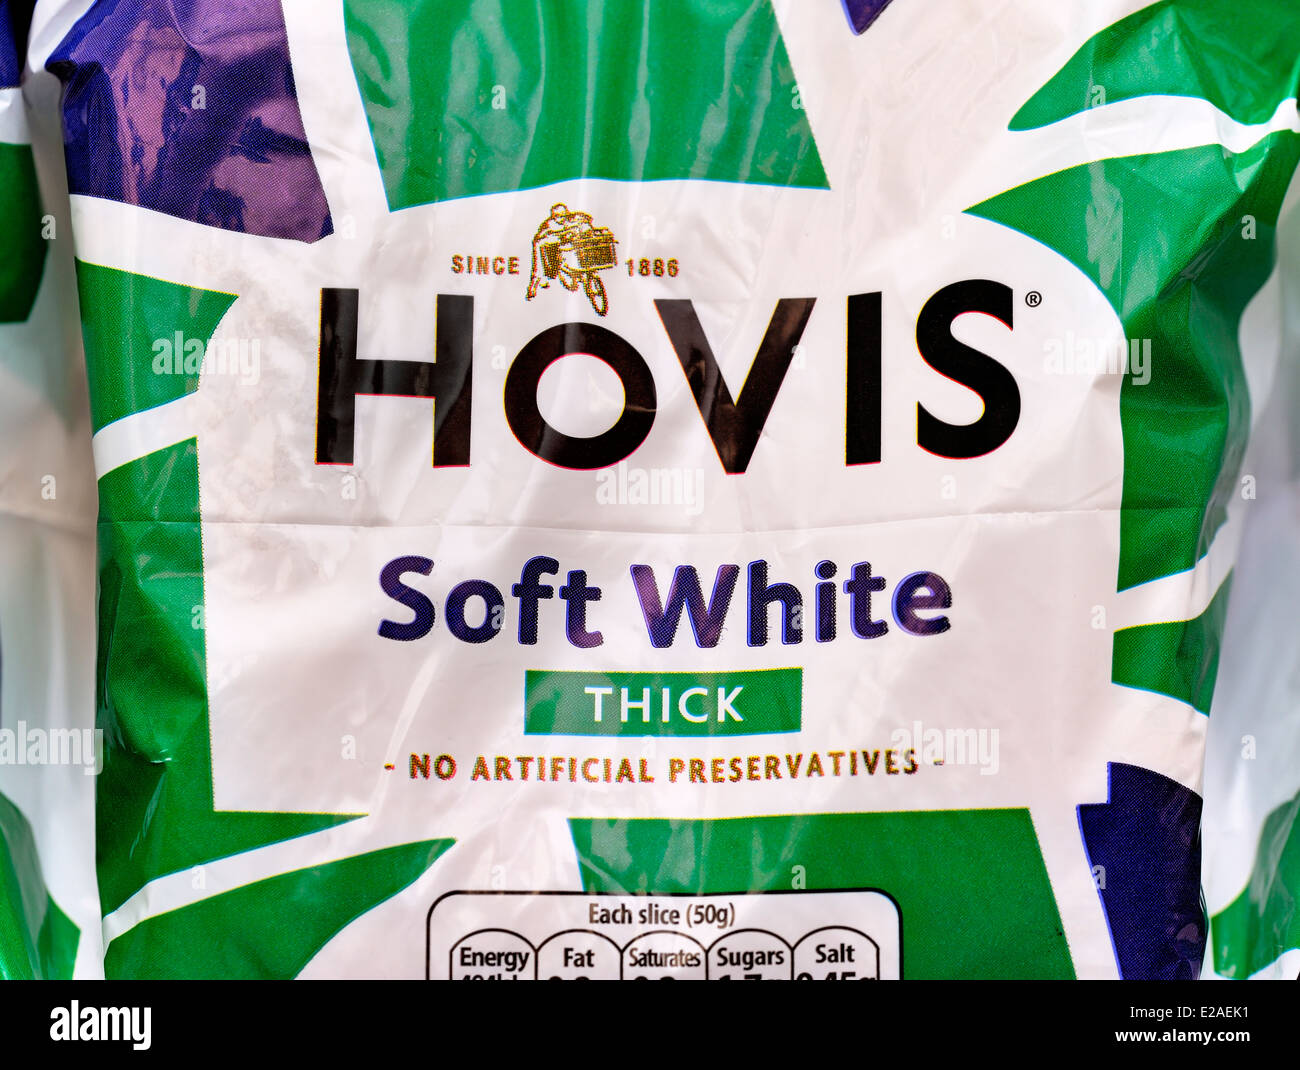 Hovis soft white thick loaf of bread - Stock Image